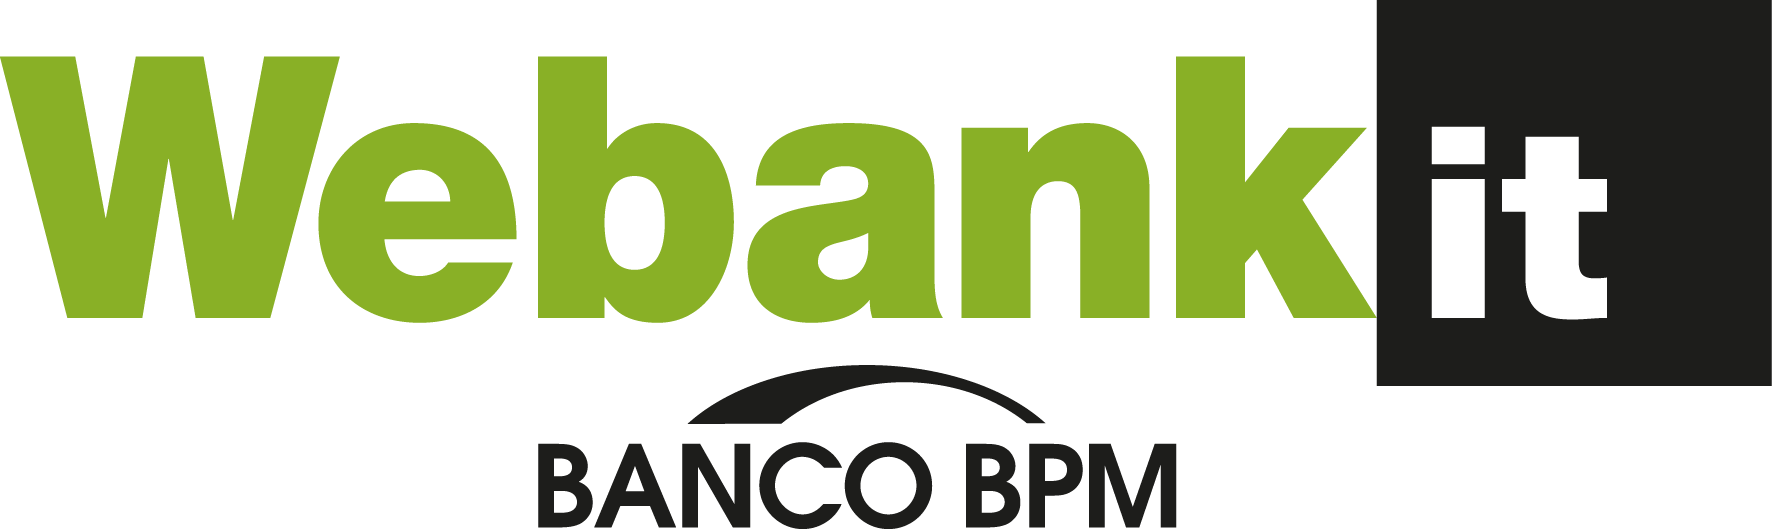 WEBANK – BANCO BPM SPA